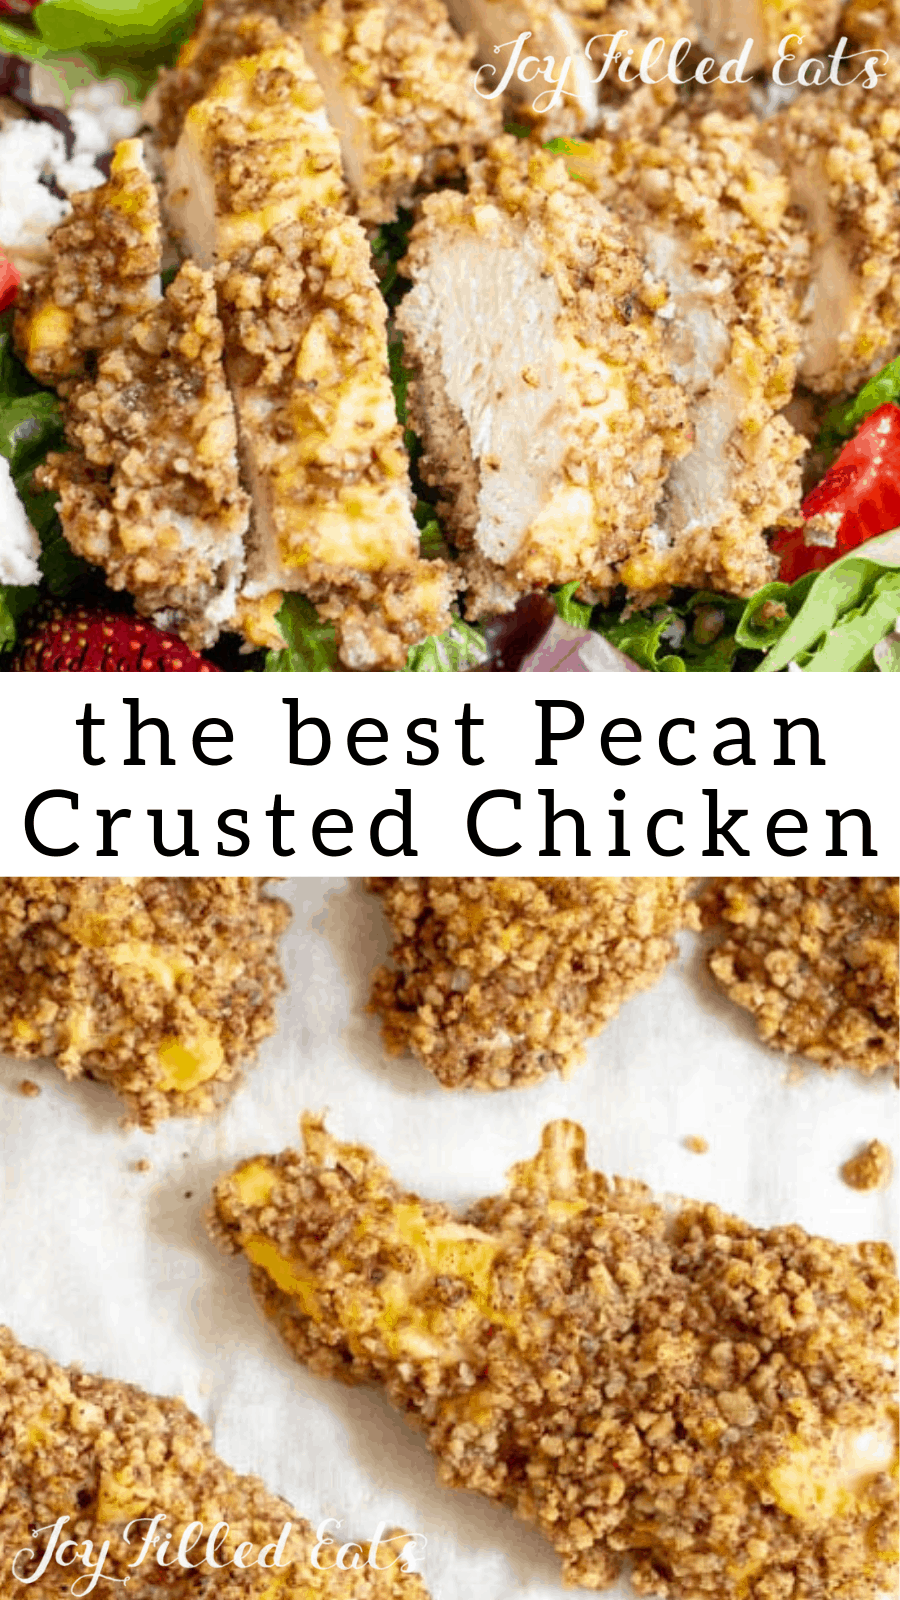 Pecan Crusted Chicken - Low Carb, Keto, Gluten-Free, THM S